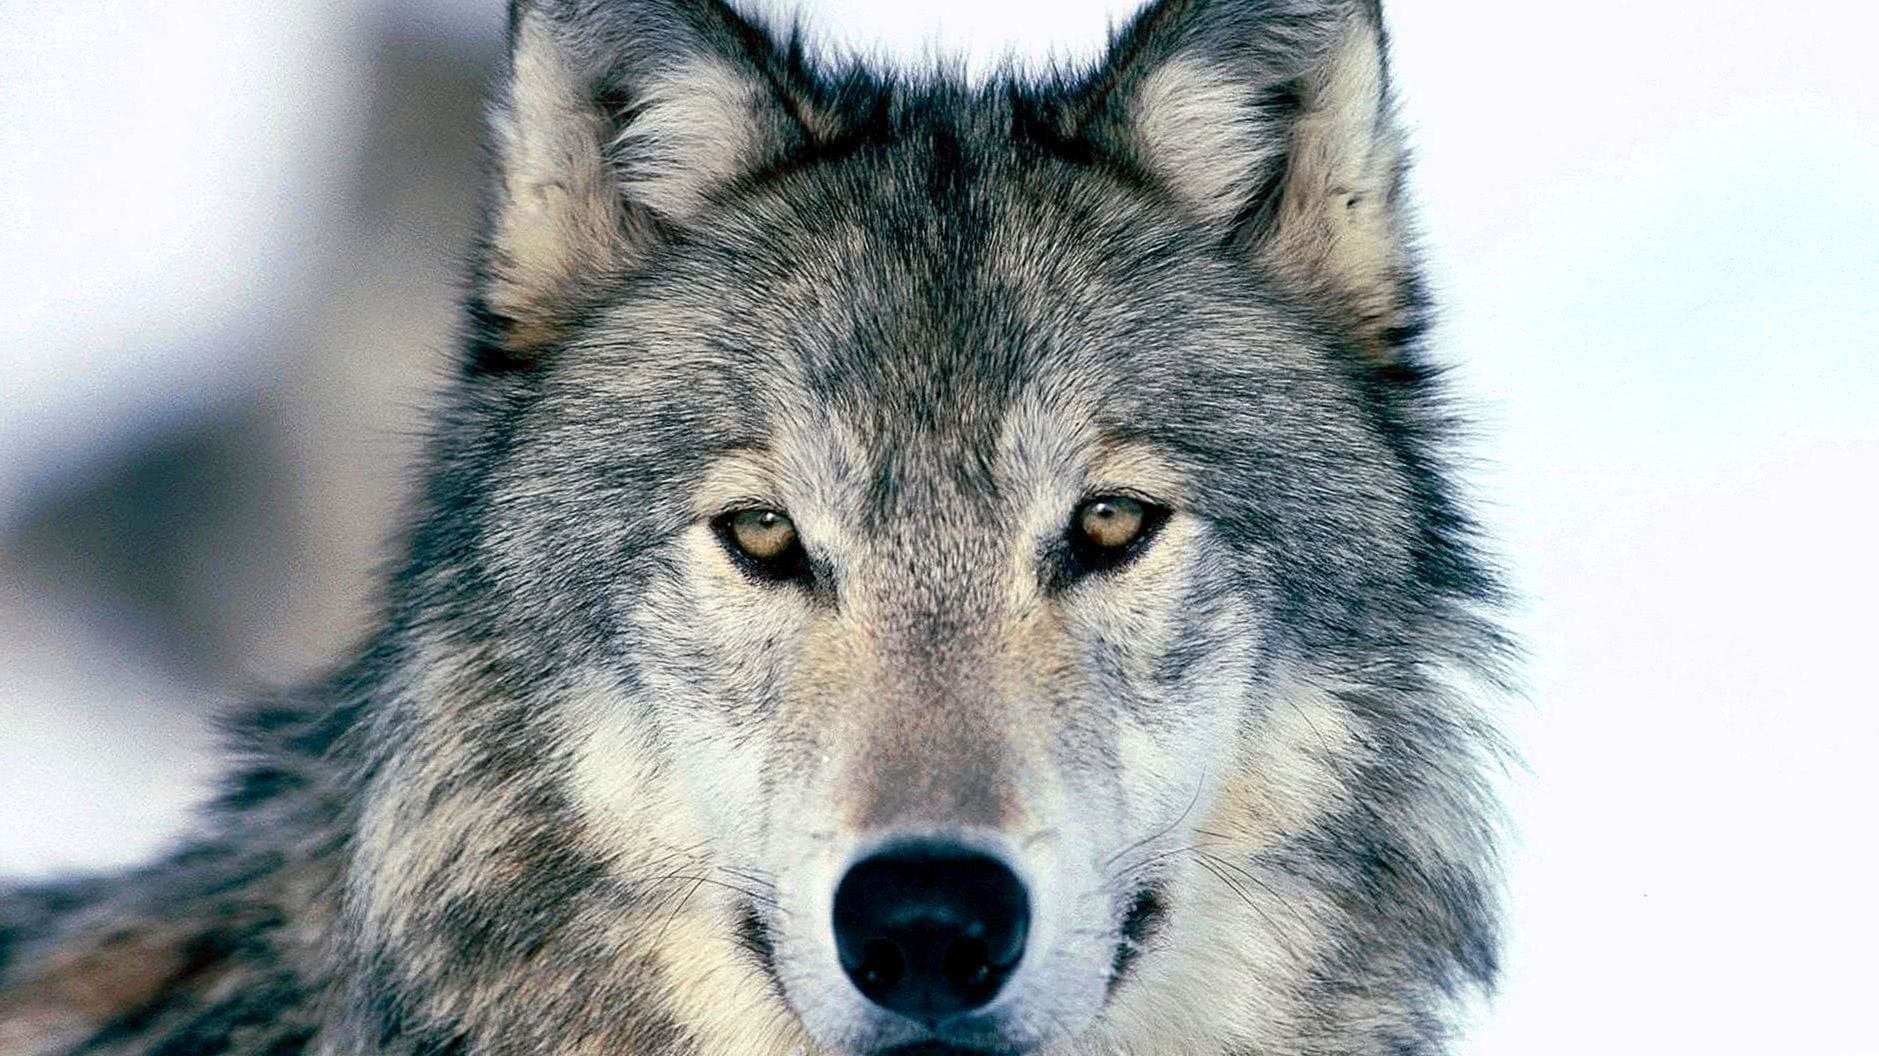 1080p Wallpapers Of Wolf - Wolf-Wallpapers.pro